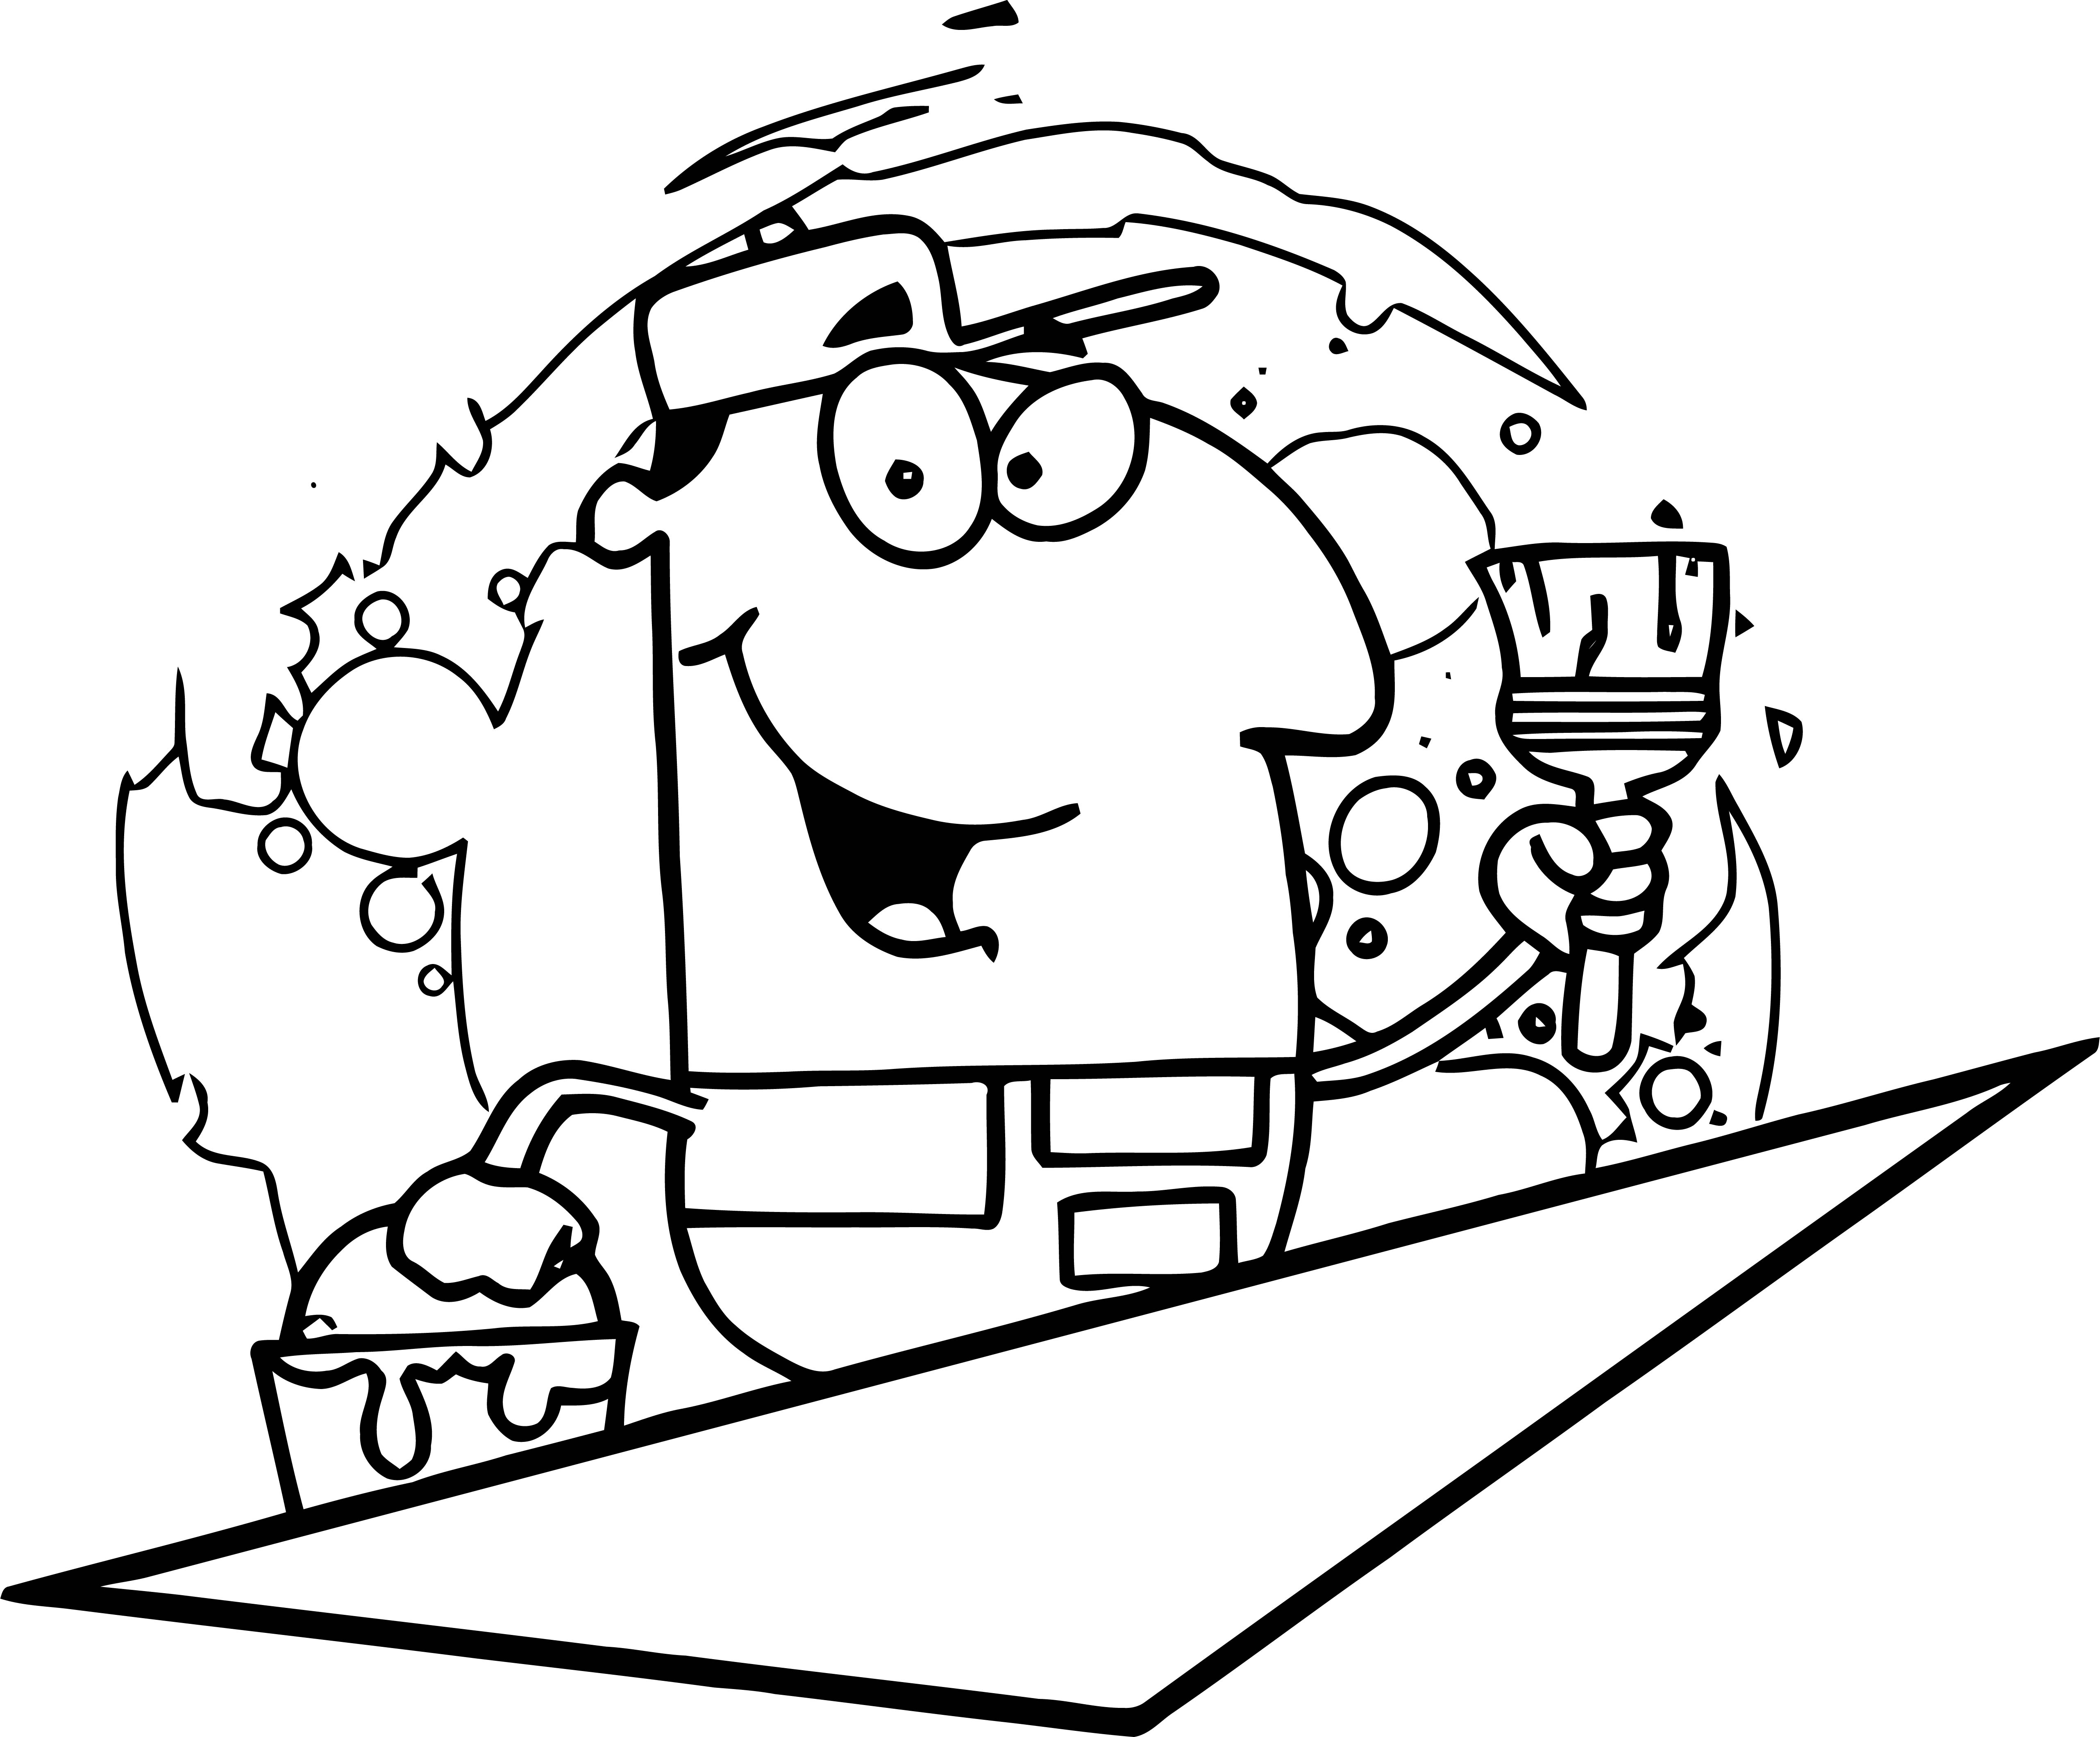 Painter Man Photo Cartoon Coloring Page